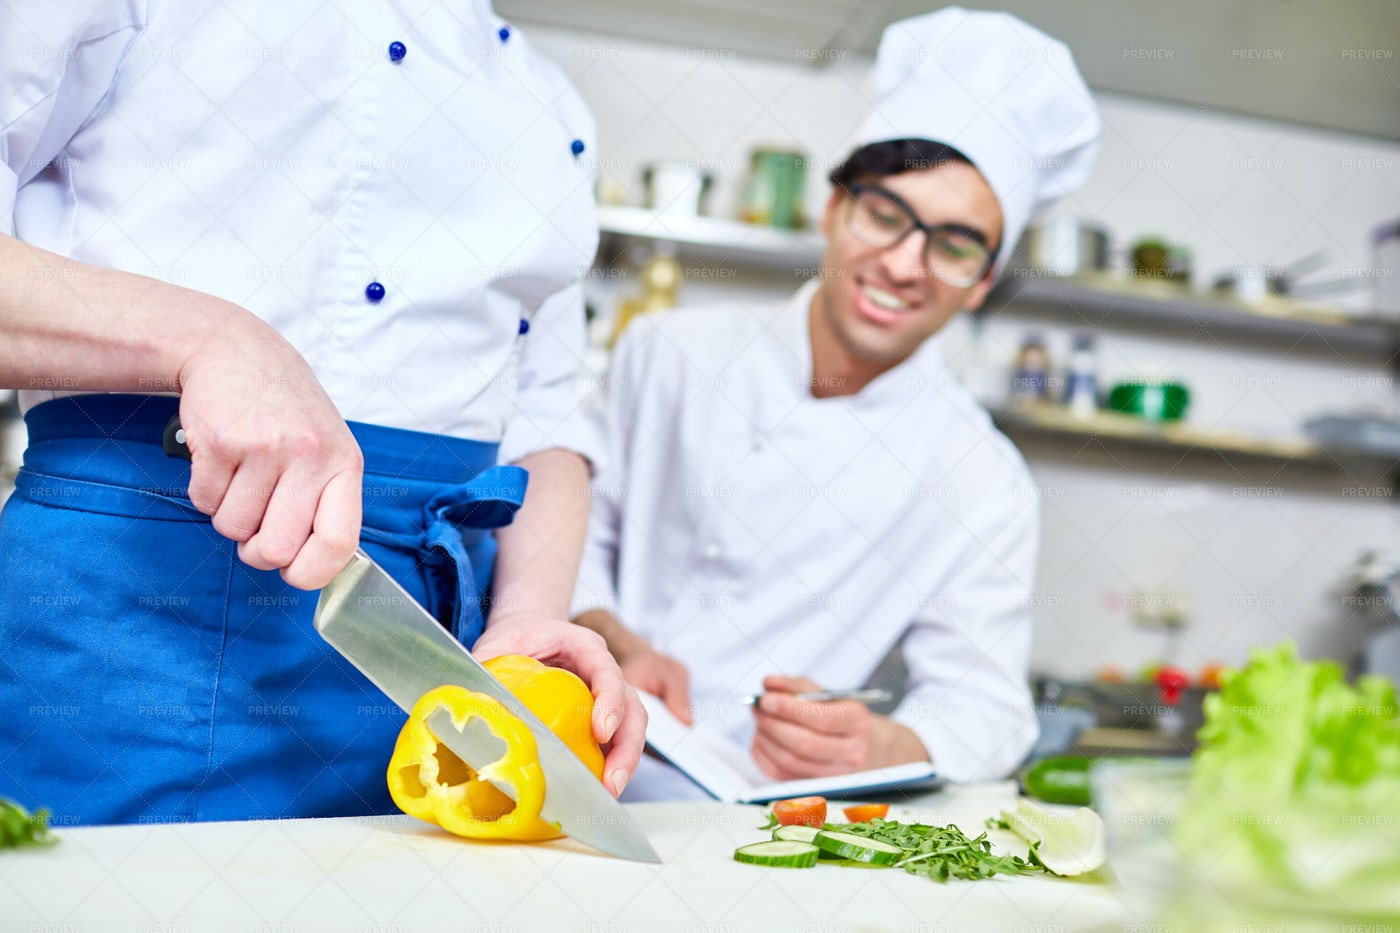 Course Of Cooking: Stock Photos